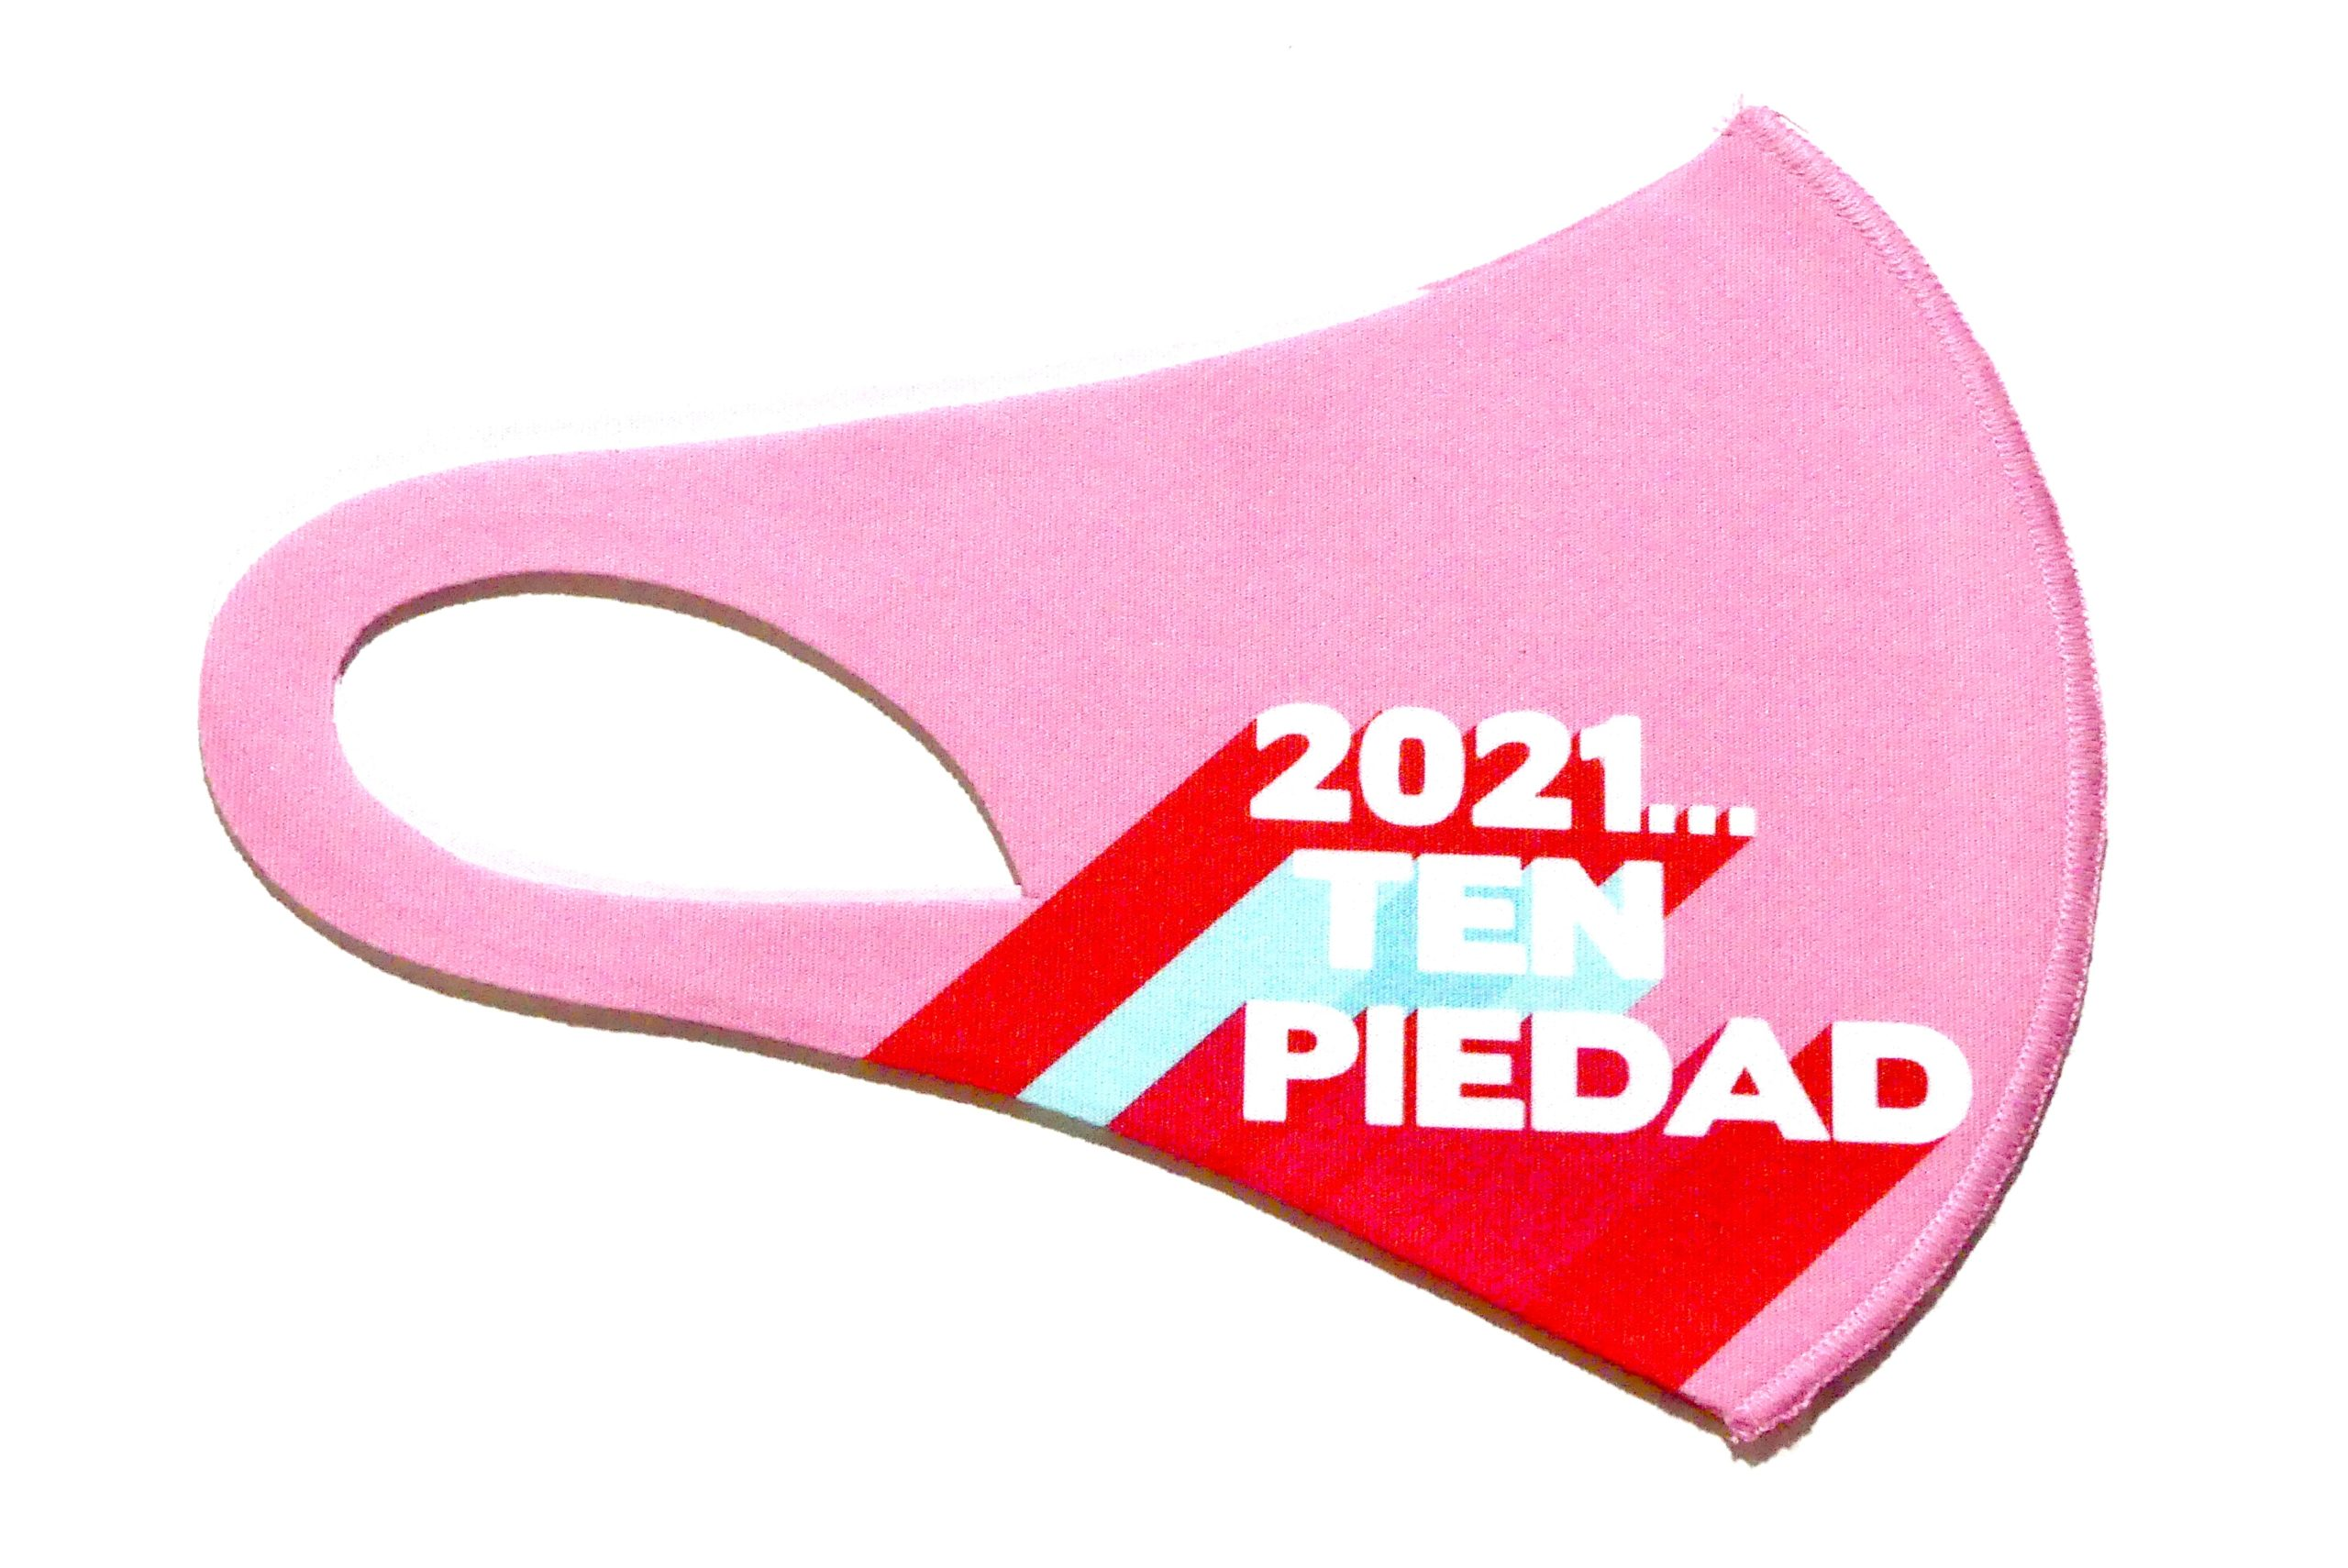 XMAS Limited Edition, 2021 PINK